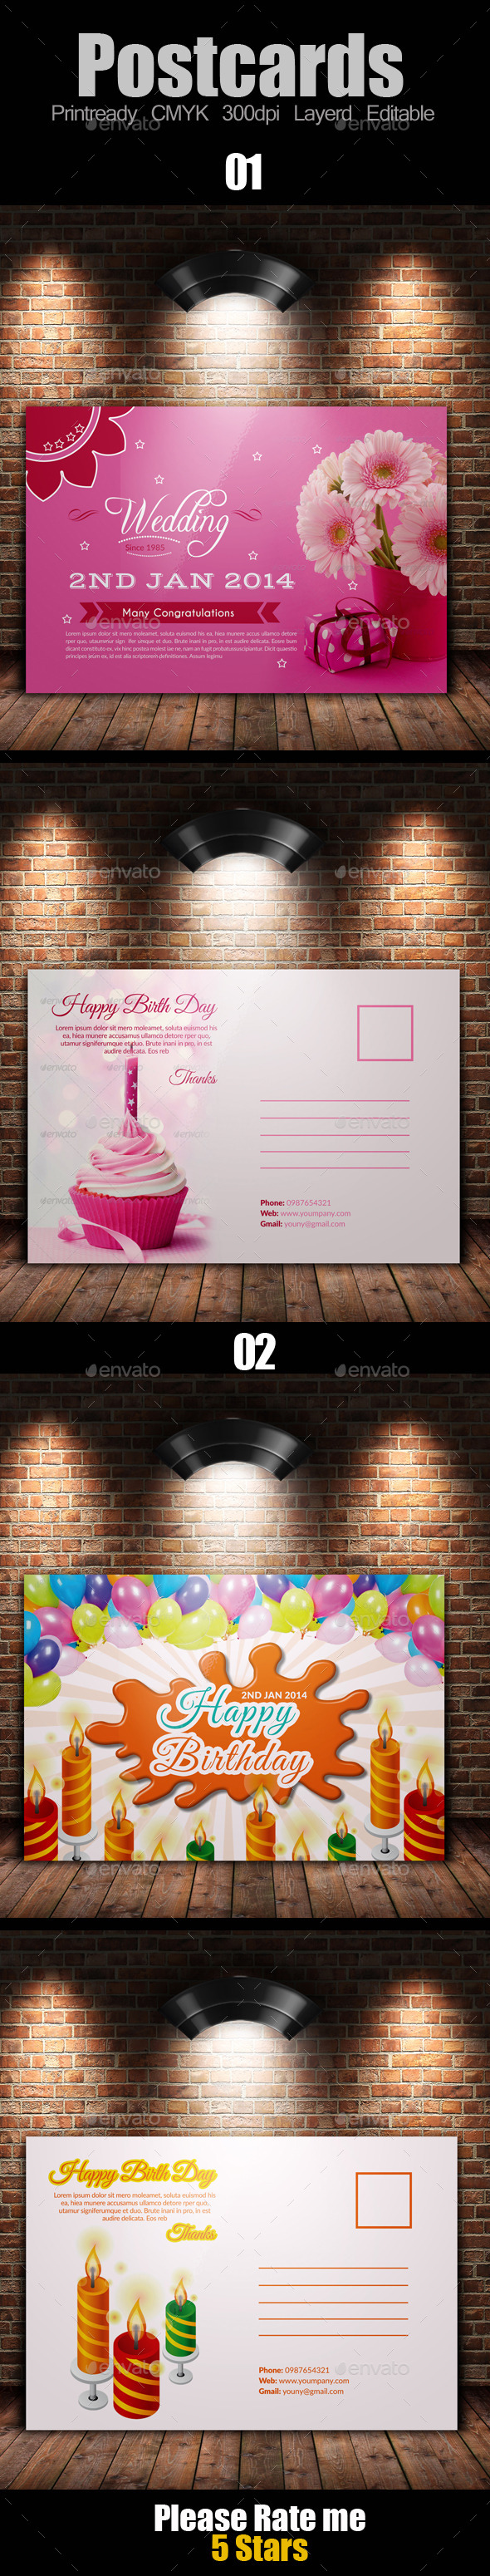 Birth Day Invitation Postcard Bundle